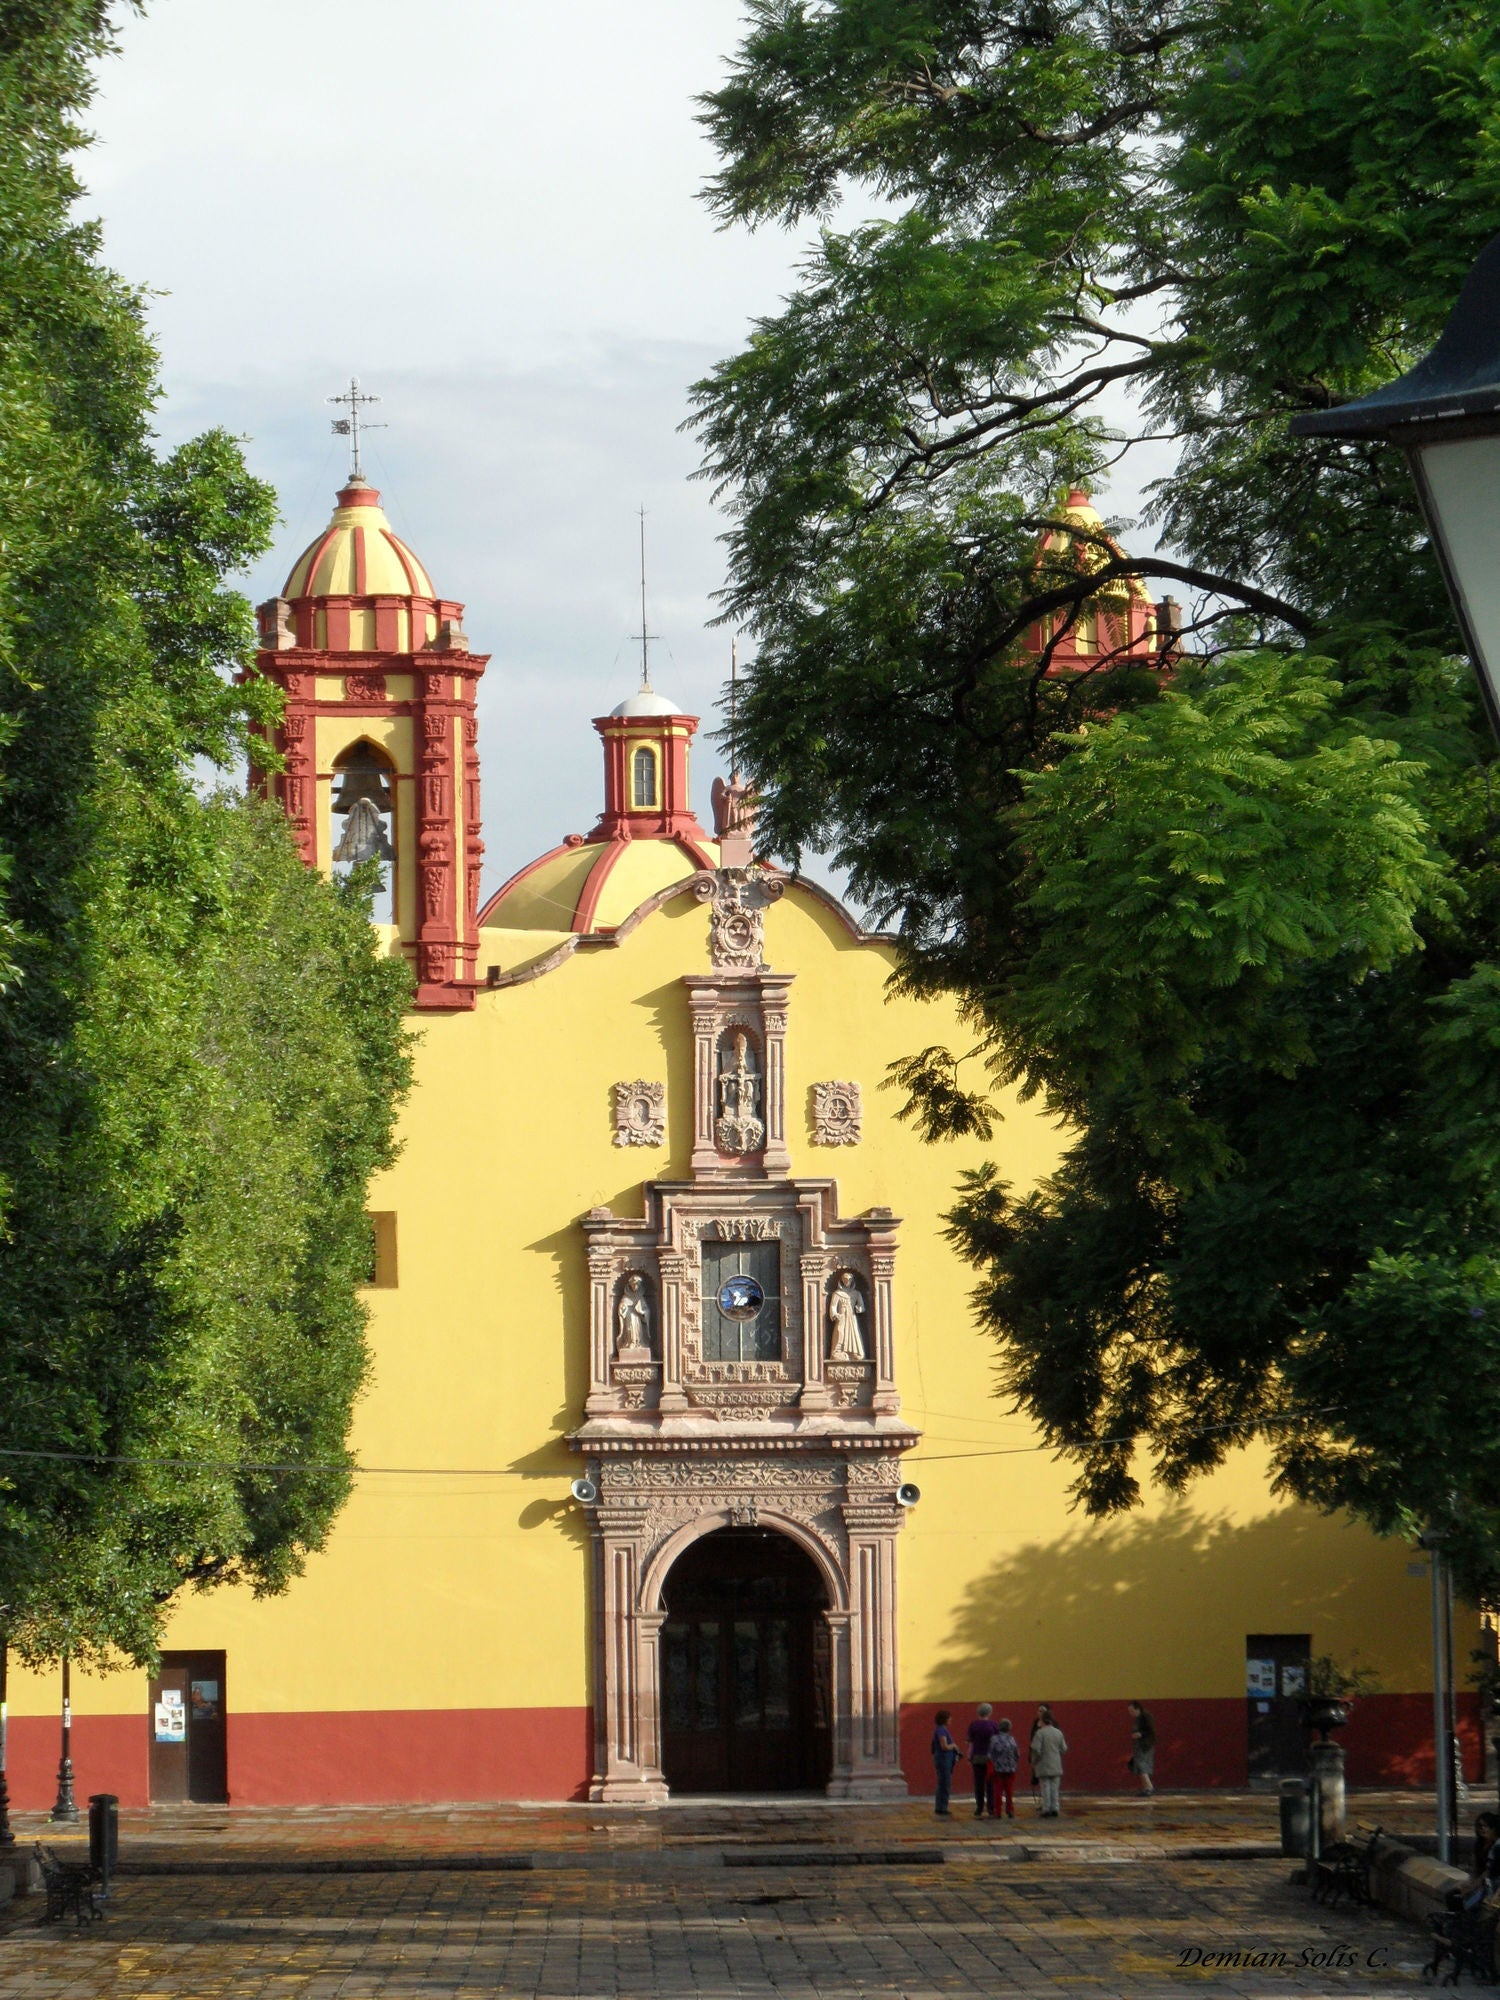 Historic Centre of San Luis Potosí